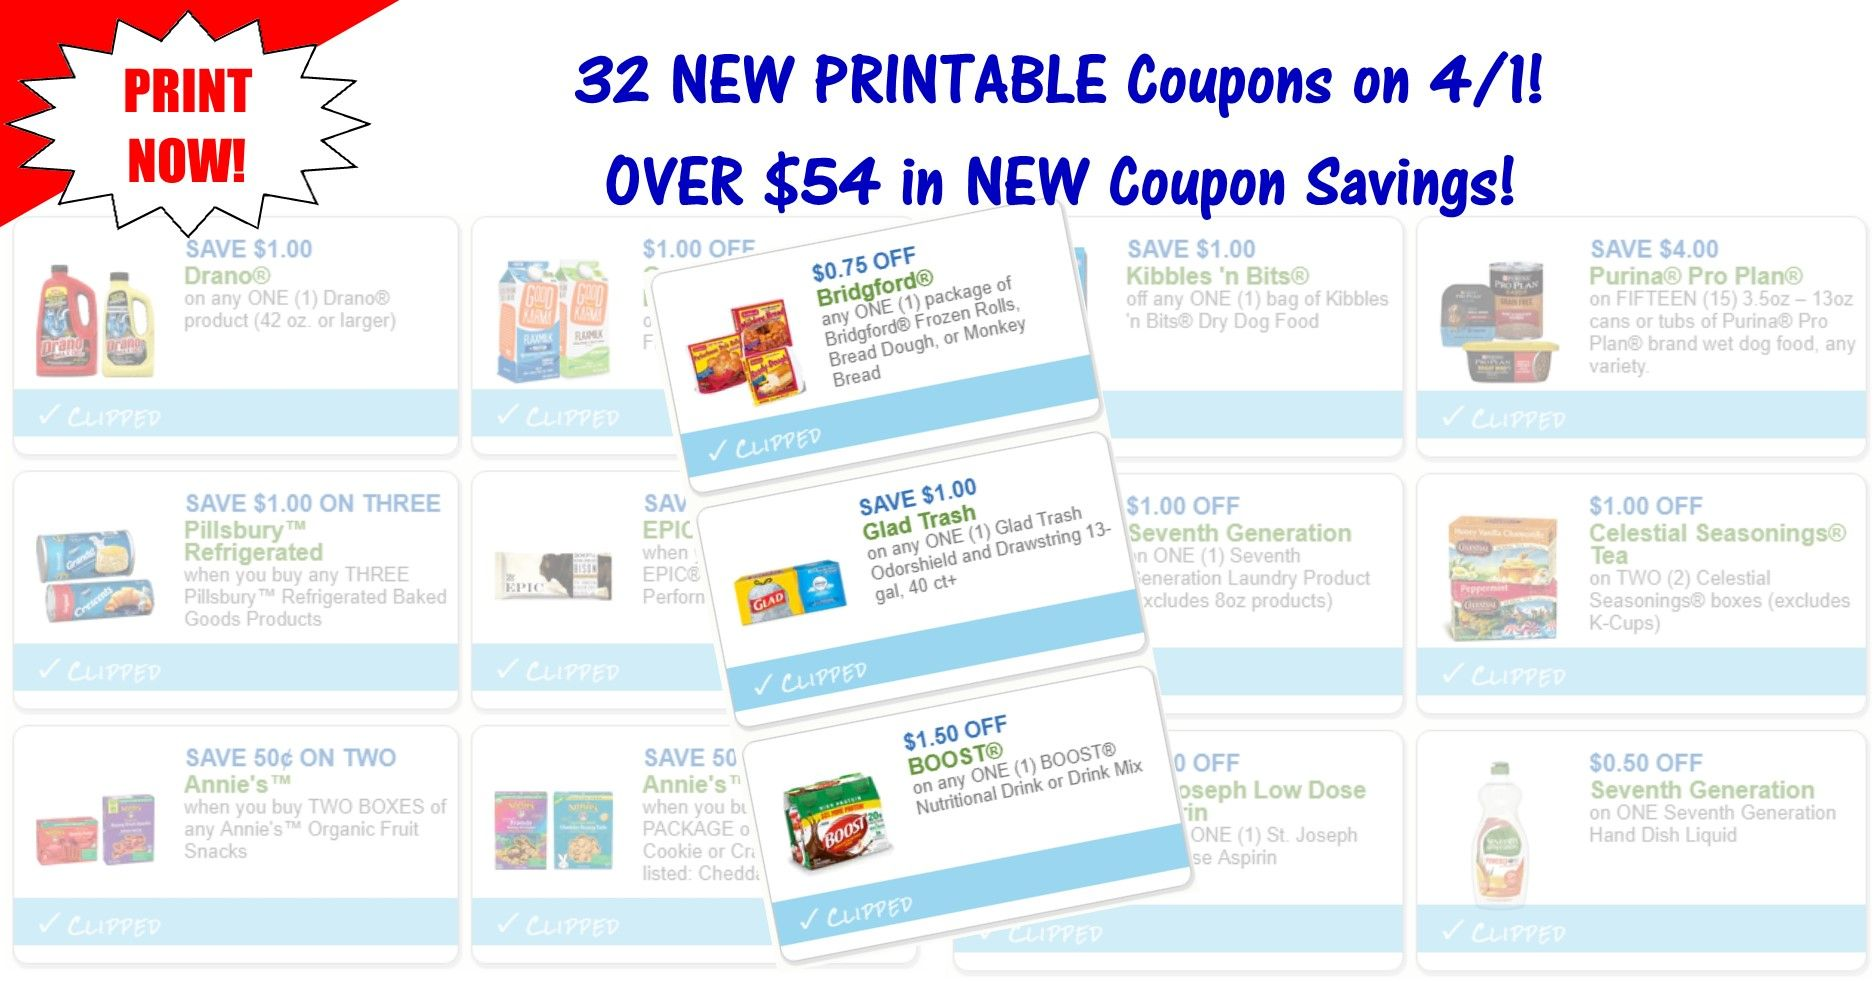 32 NEW Printable Coupons NEW April 1st Coupons! Print